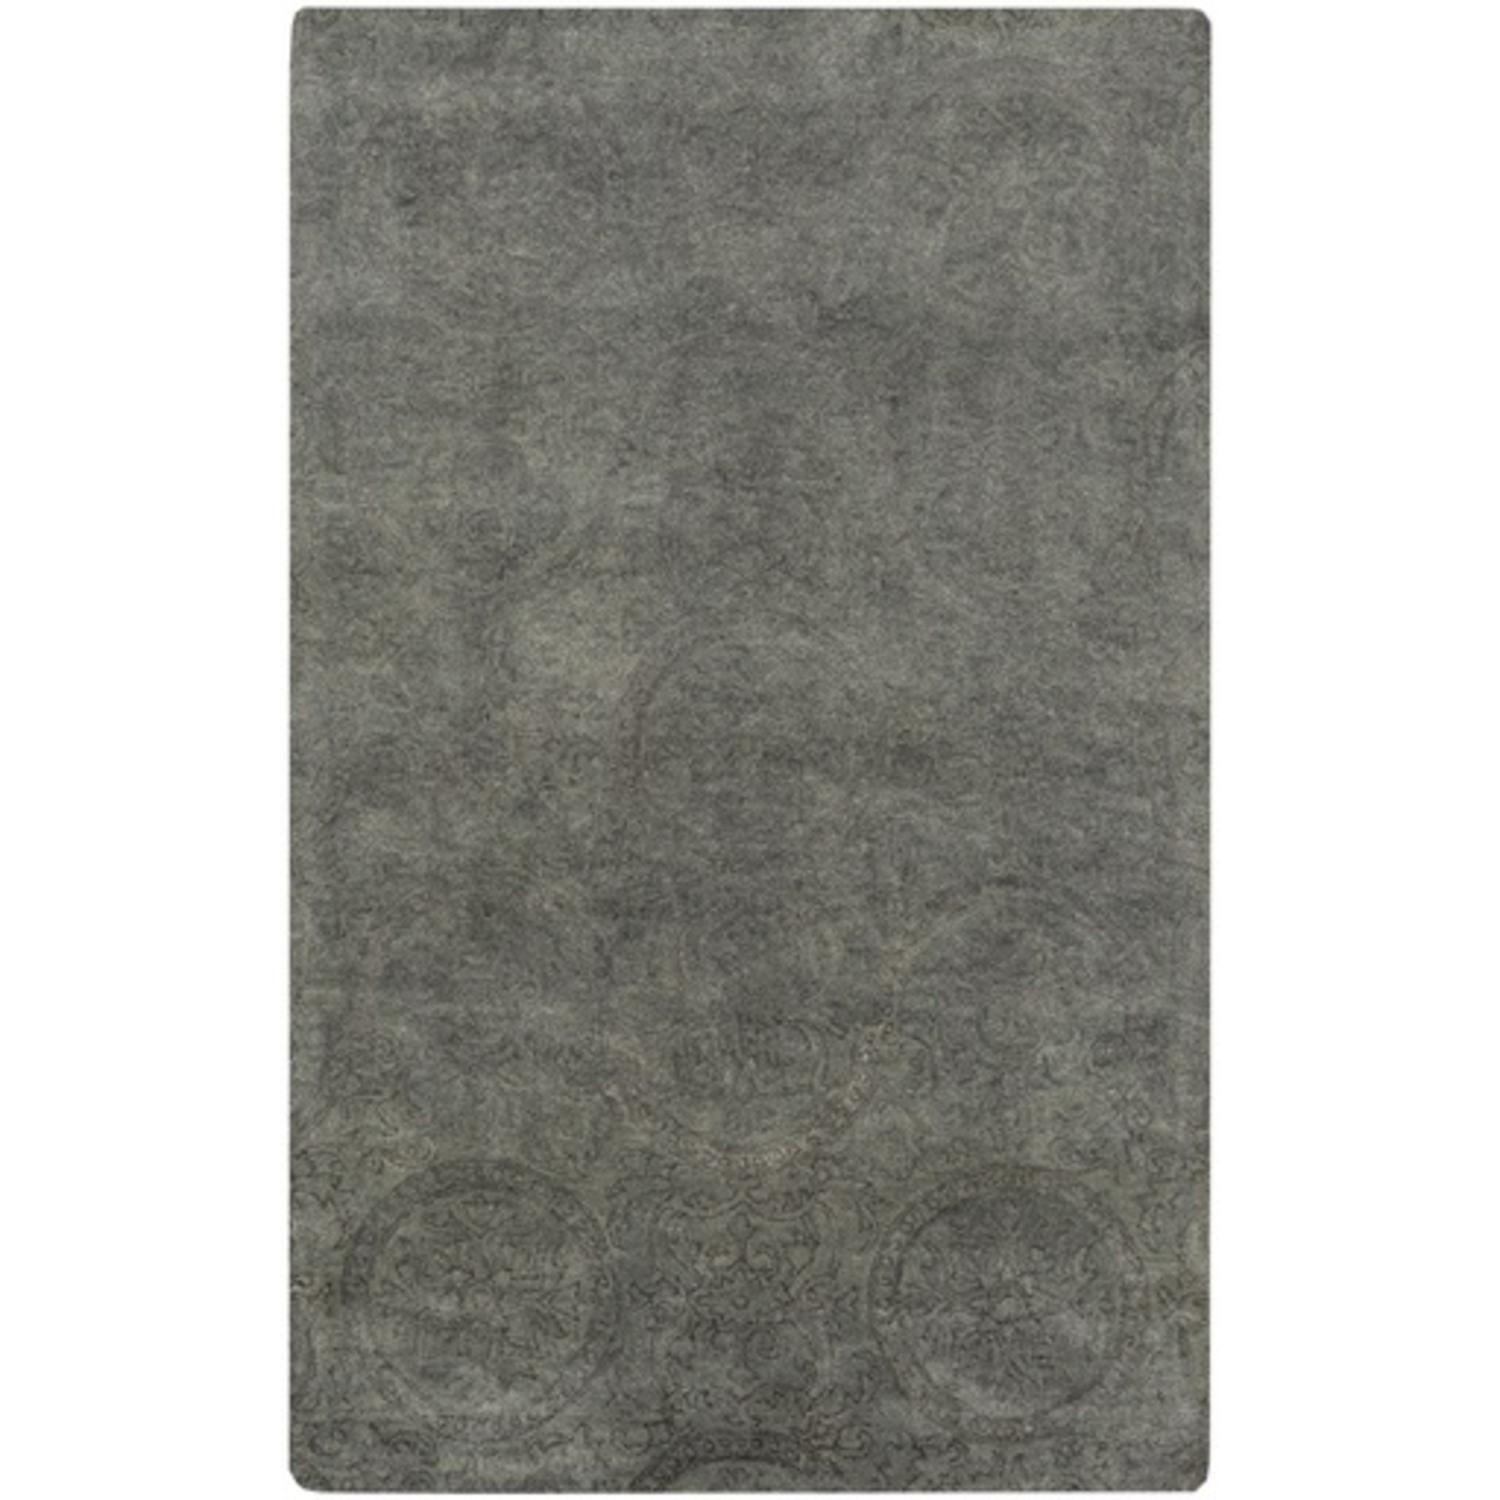 3.25' x 5.25' Turkish Marvels Charcoal Gray and Forest Green Hand Tufted Wool Area Throw Rug